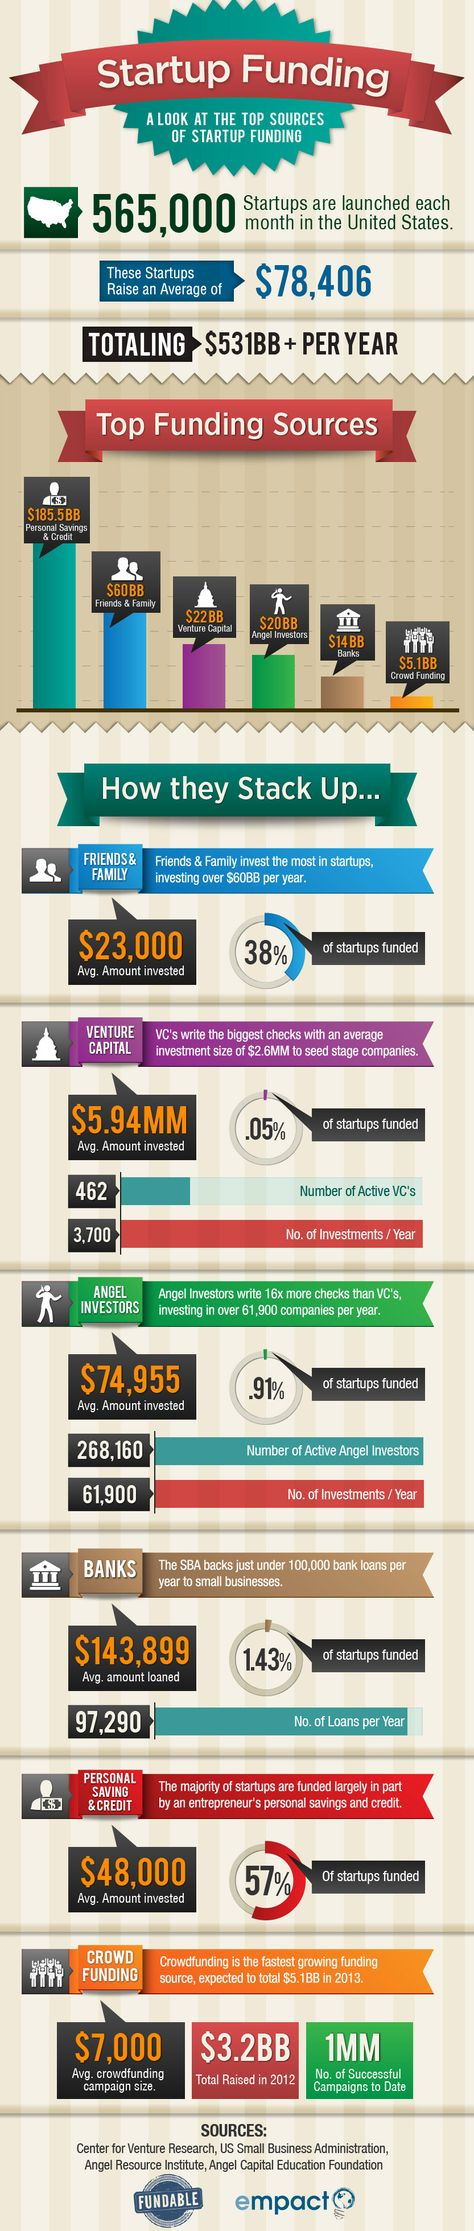 Hey Startups, Where Does Your Money Come From? [Infographic]